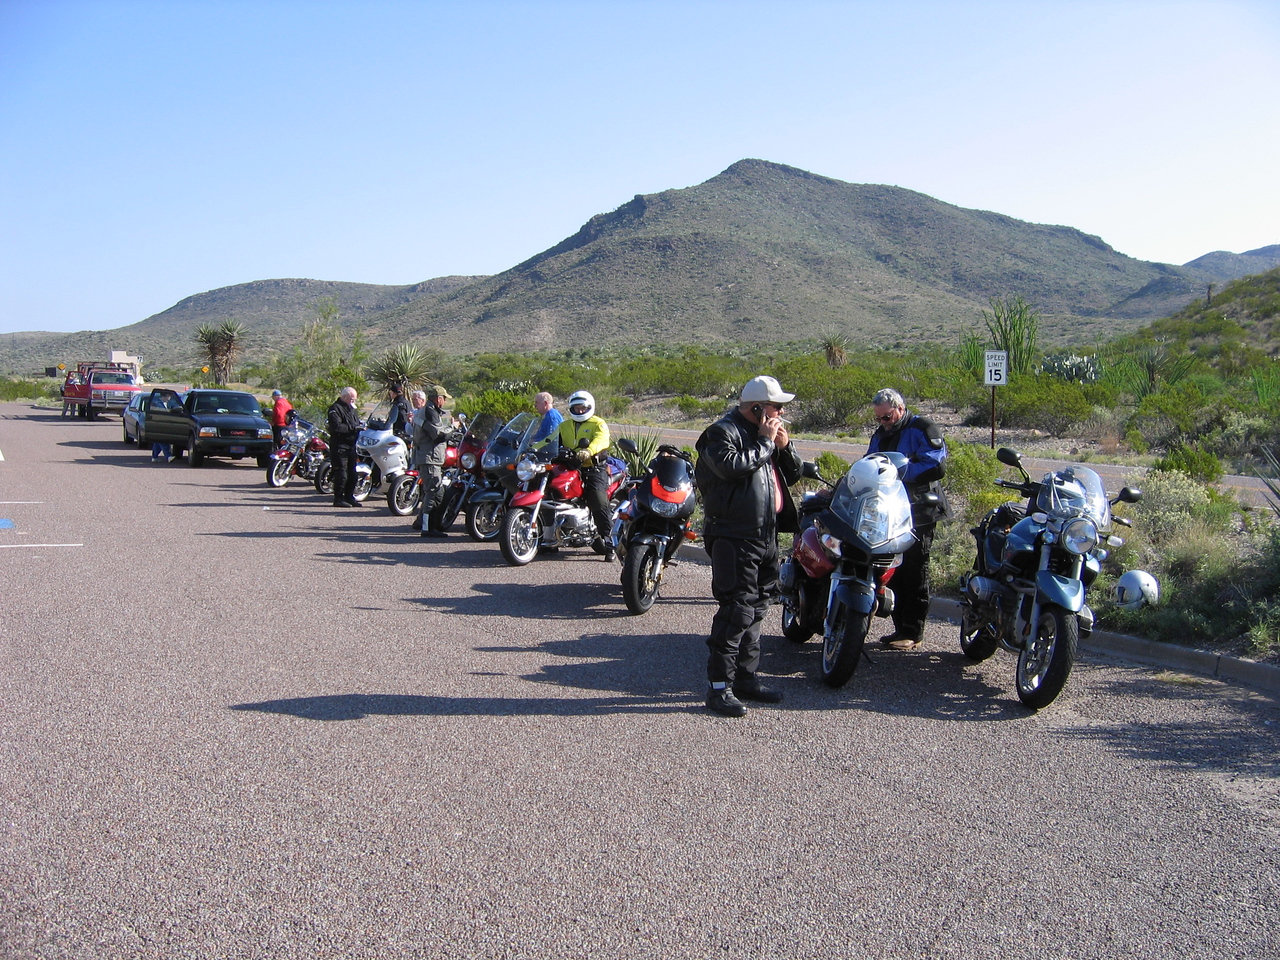 Herd of old bikers at entrance to Big Bend National Park...